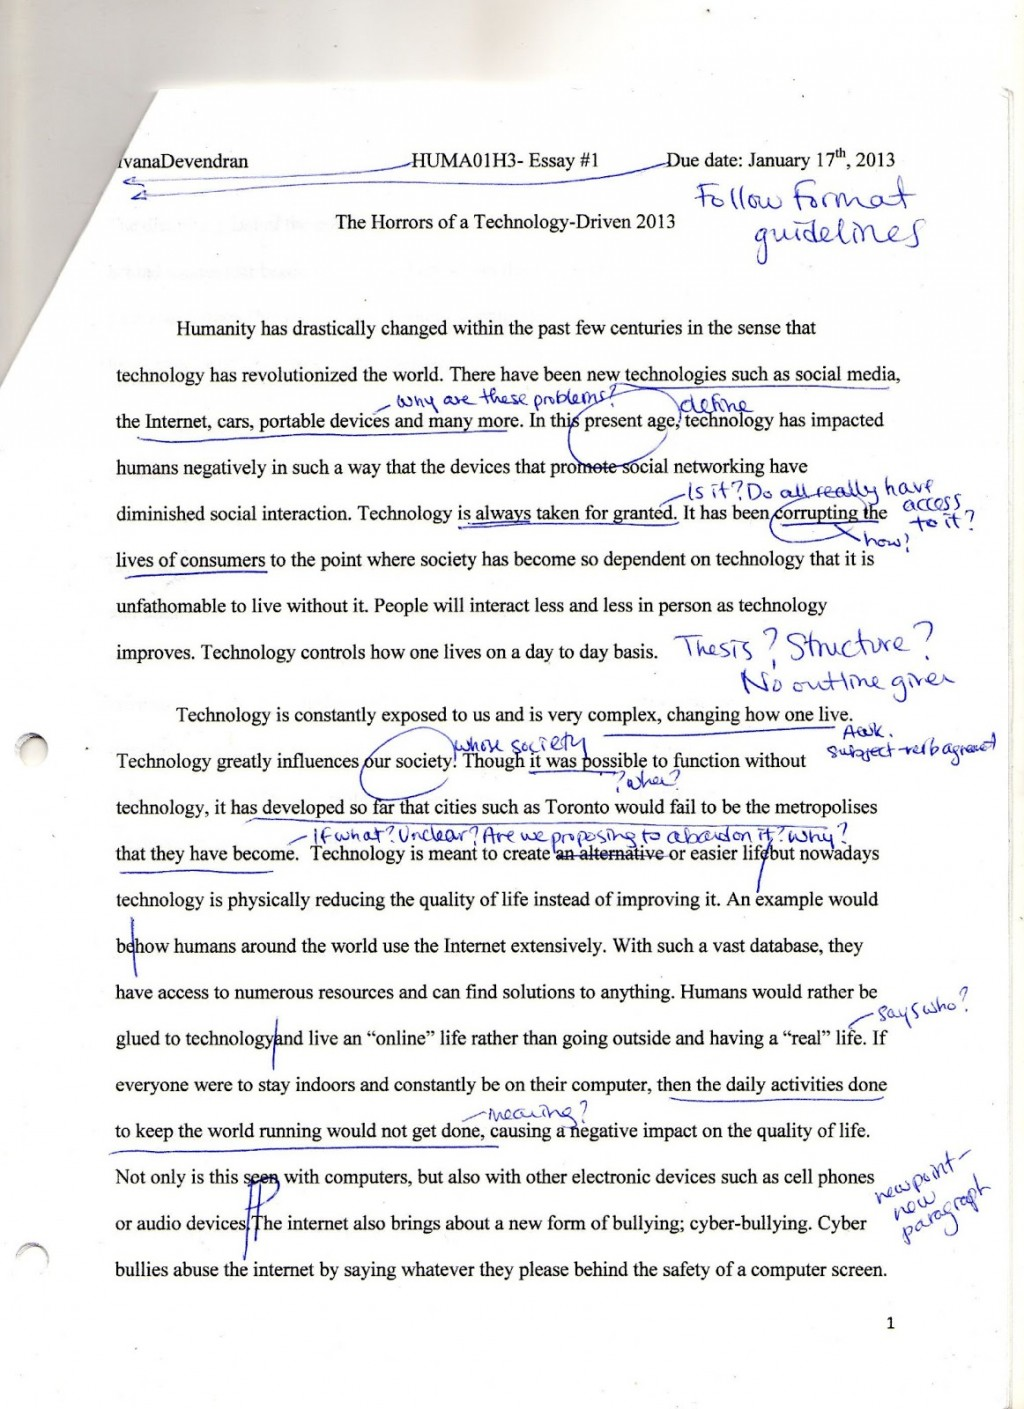 012 Essay Example Bullying Humanities Essays Topics Compucenter I Persuasive About In School Write Tagalog Body Pdf Outline For Cyber Introduction Brainly Striking On And Harassment Schools Large